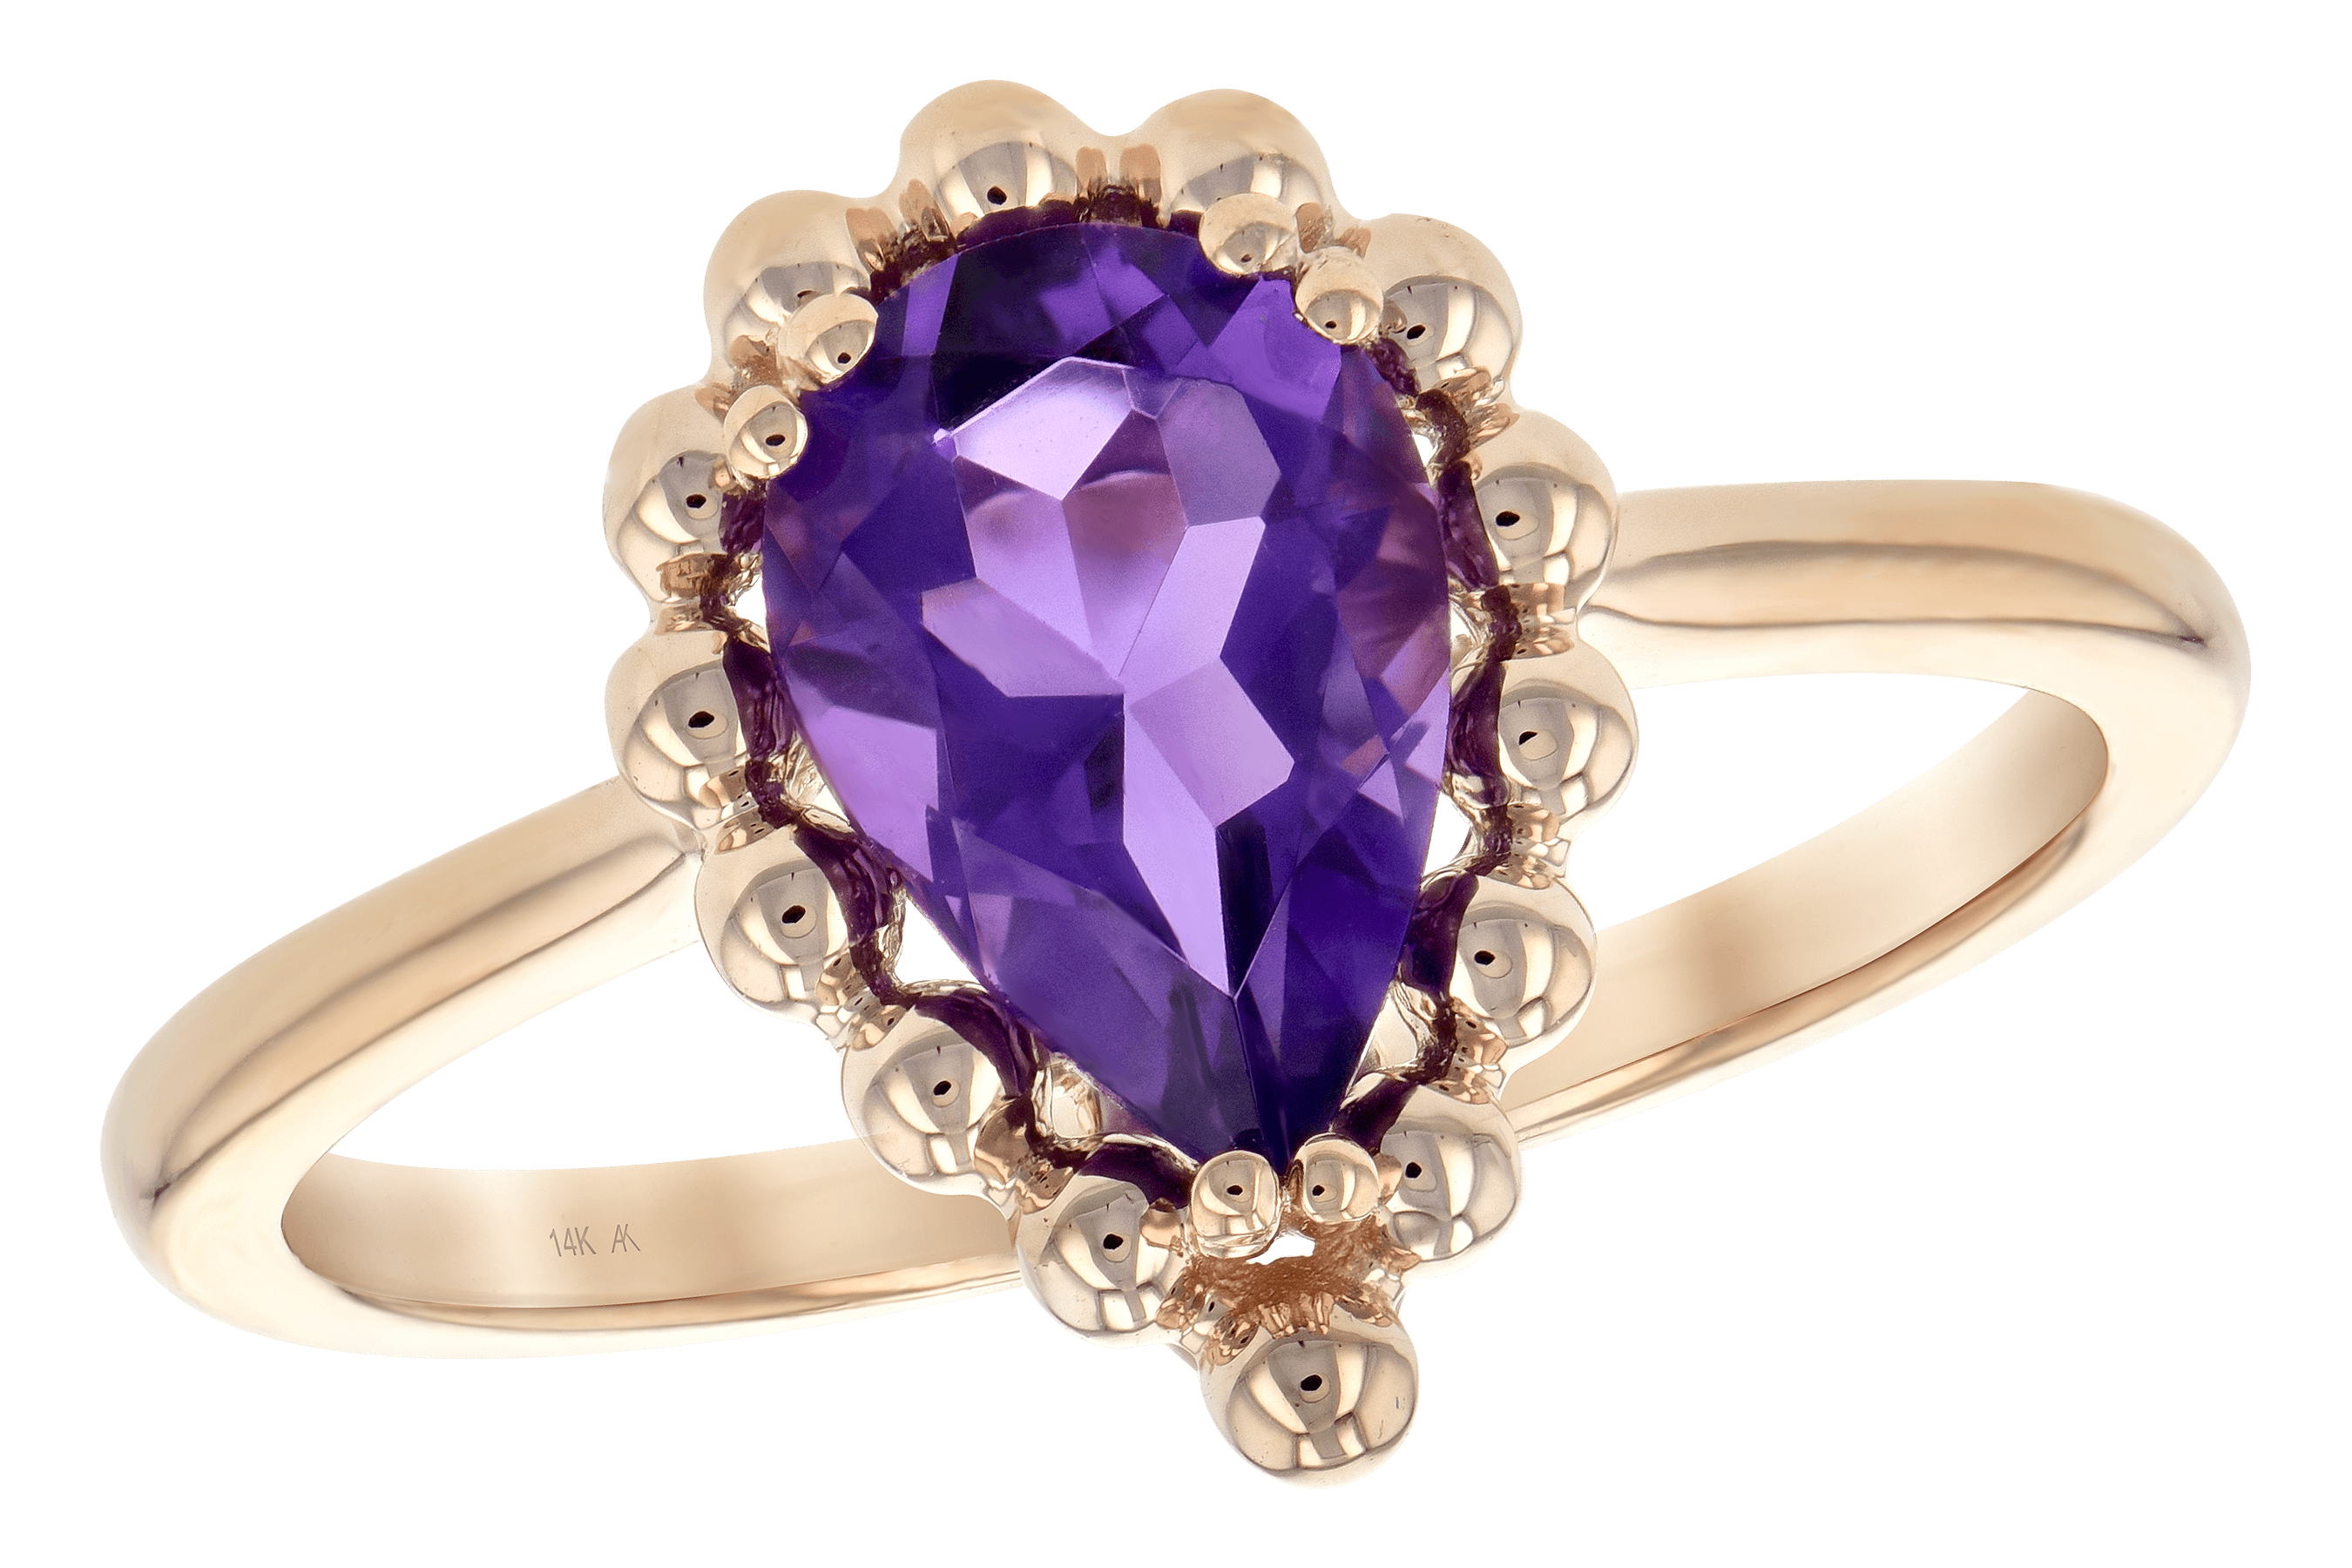 C189-22522: LDS RING 1.06 CT AMETHYST